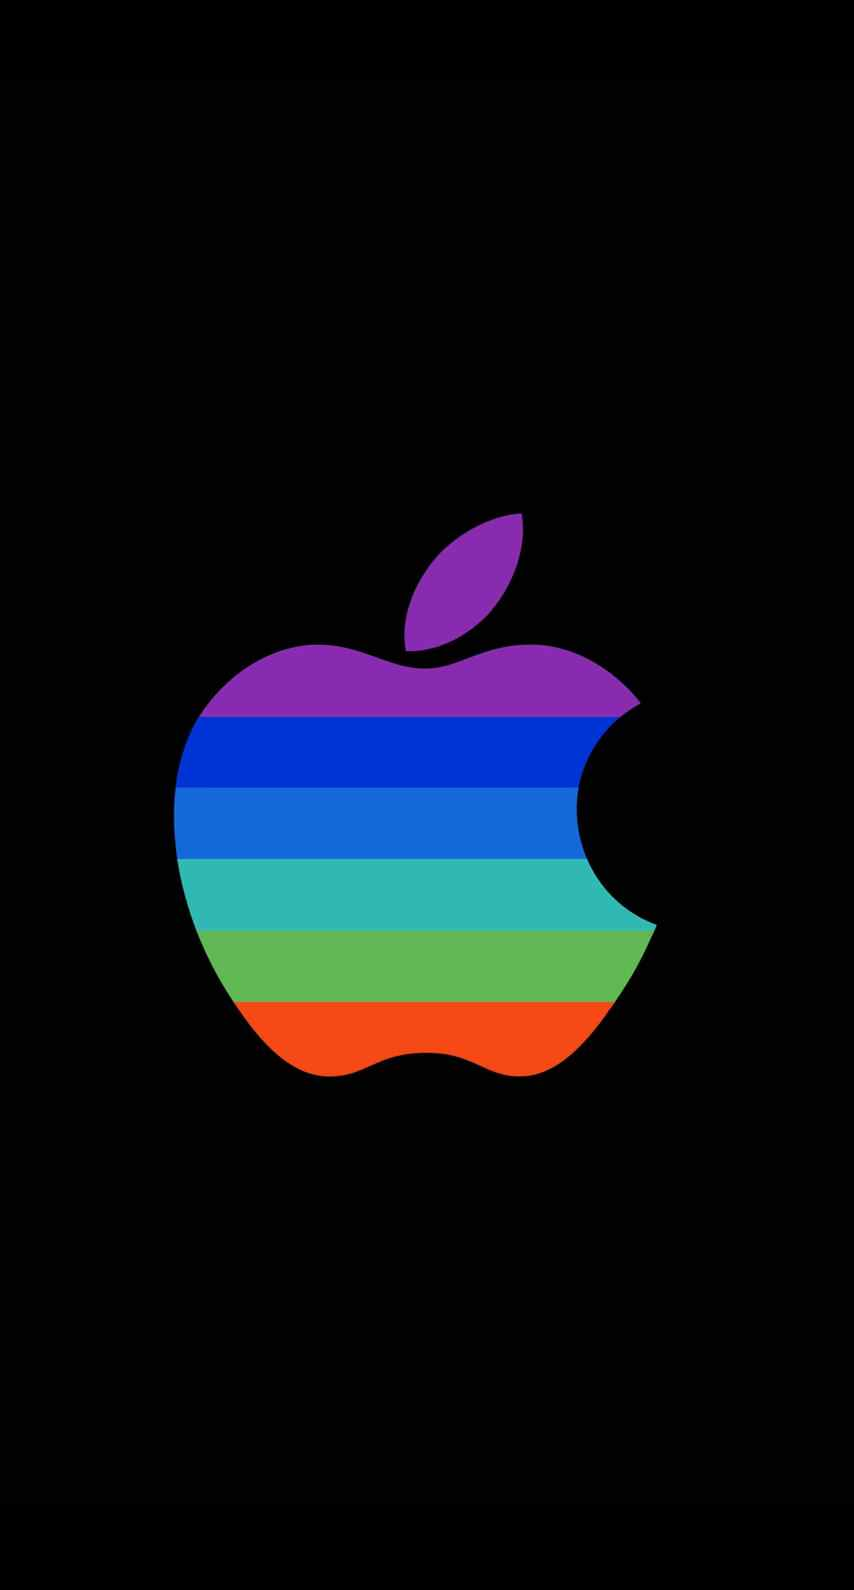 Apple Logo Colorful Black Cool Wallpaper Sc Iphone6s